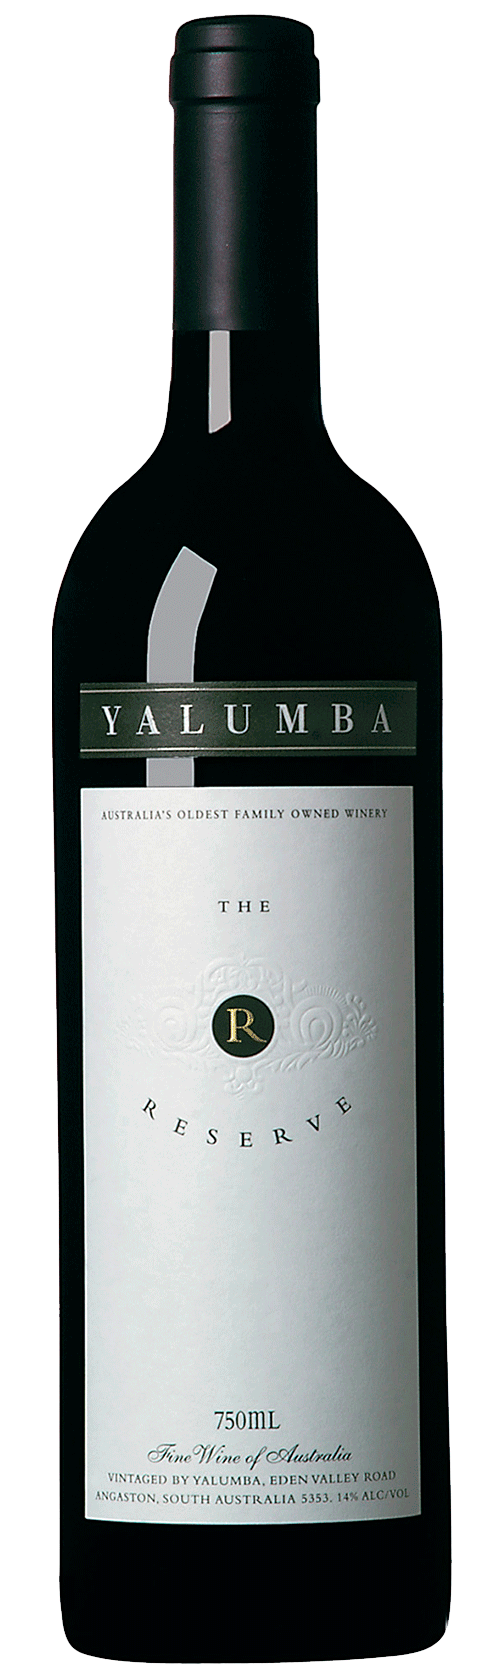 The Reserve Cabernet Sauvignon Shiraz 2002